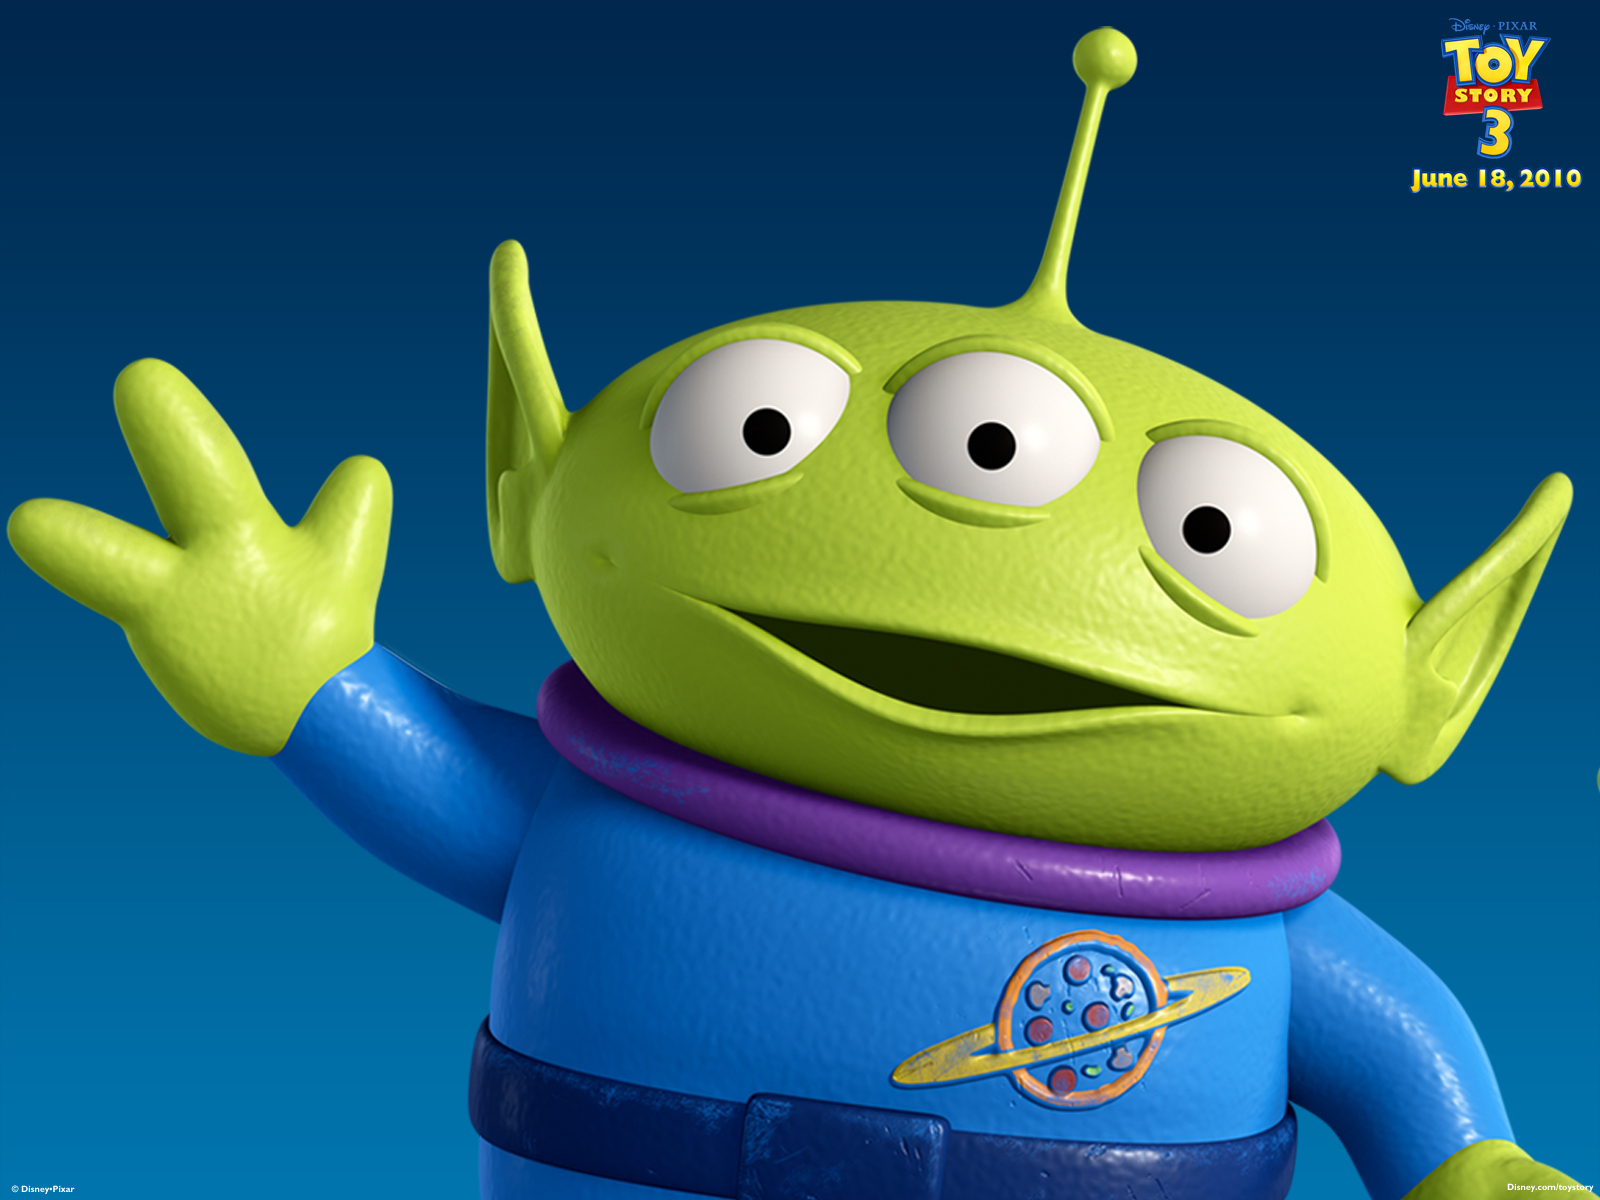 3d Hd Live Wallpaper For Android Phone Download Toy Story Alien Wallpaper Gallery